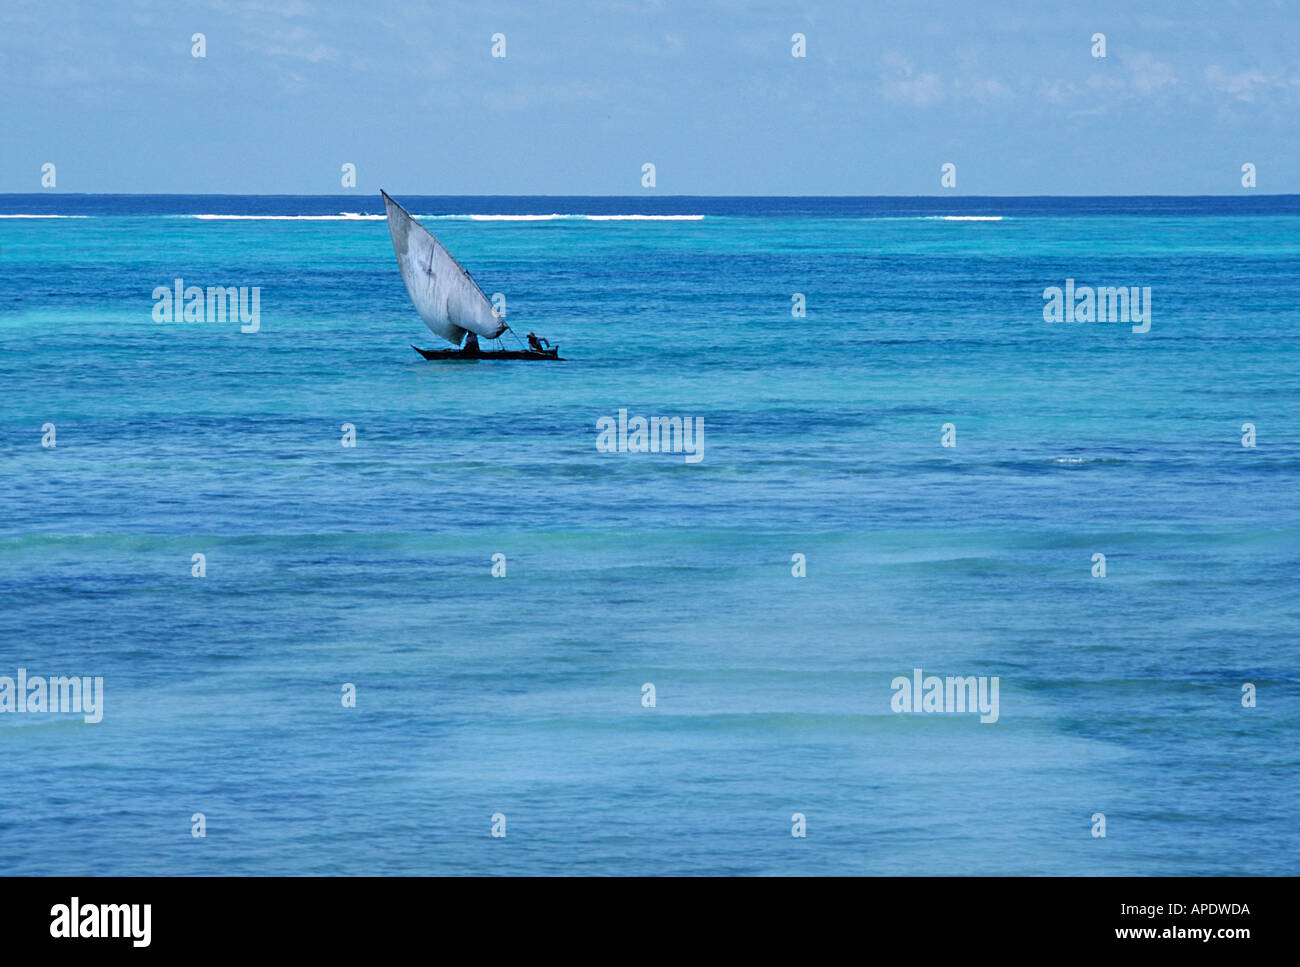 Nungwi Zanzibar TANZANIA Fisherman in a dhow on bright turquoise waters off the coast of northern Unguja - Stock Image